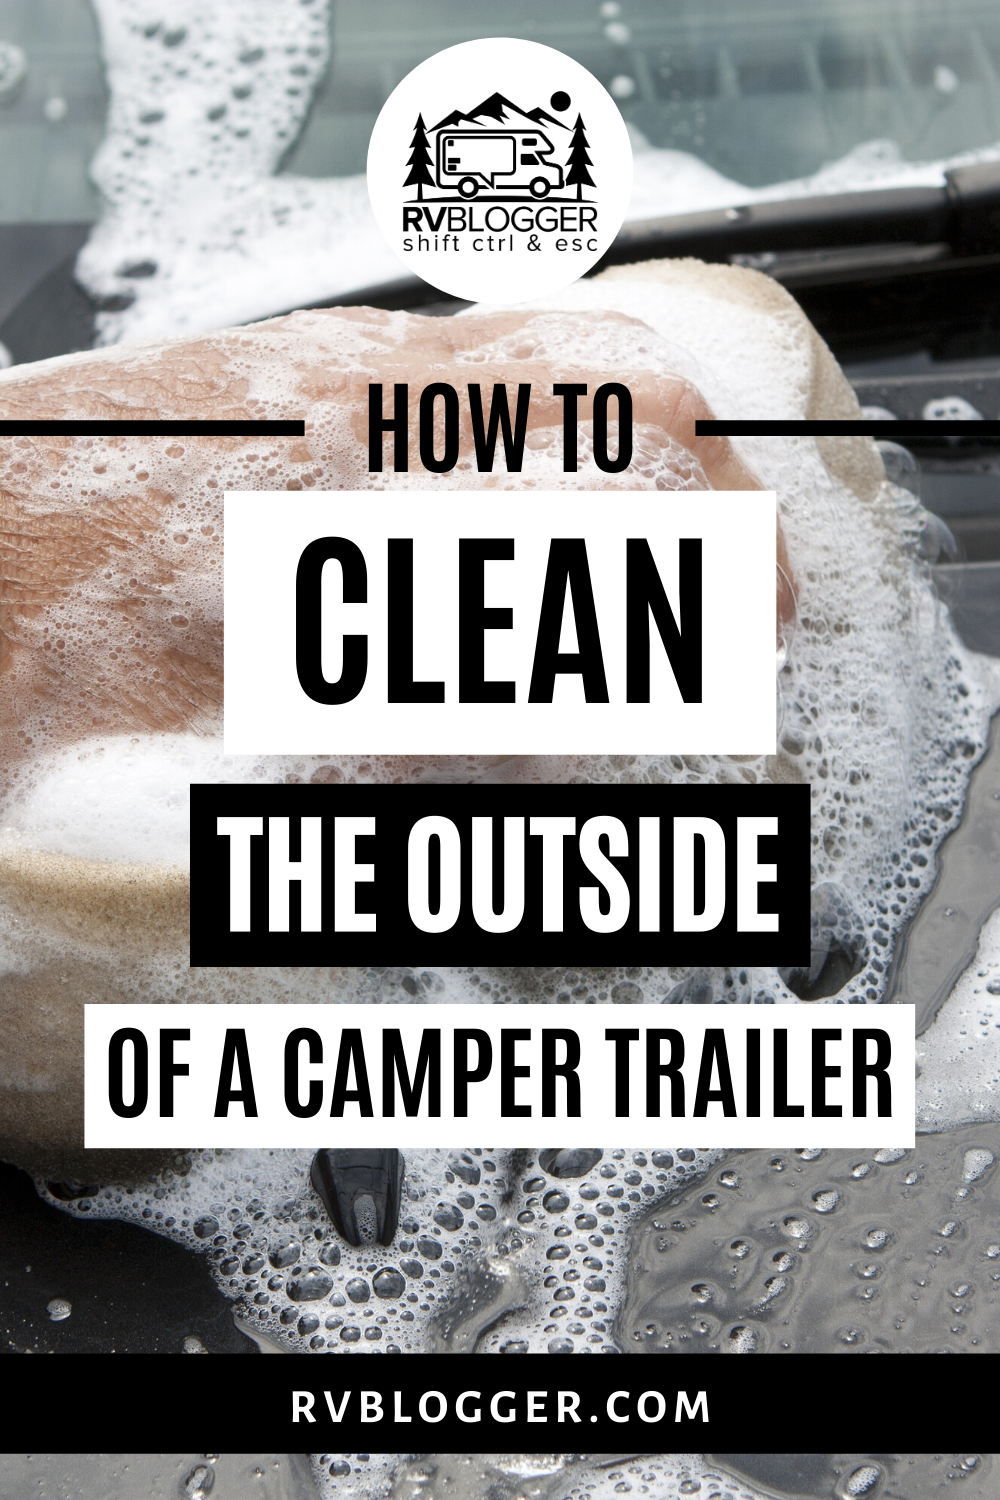 How to Clean the Outside of a Camper Trailer (With images ...